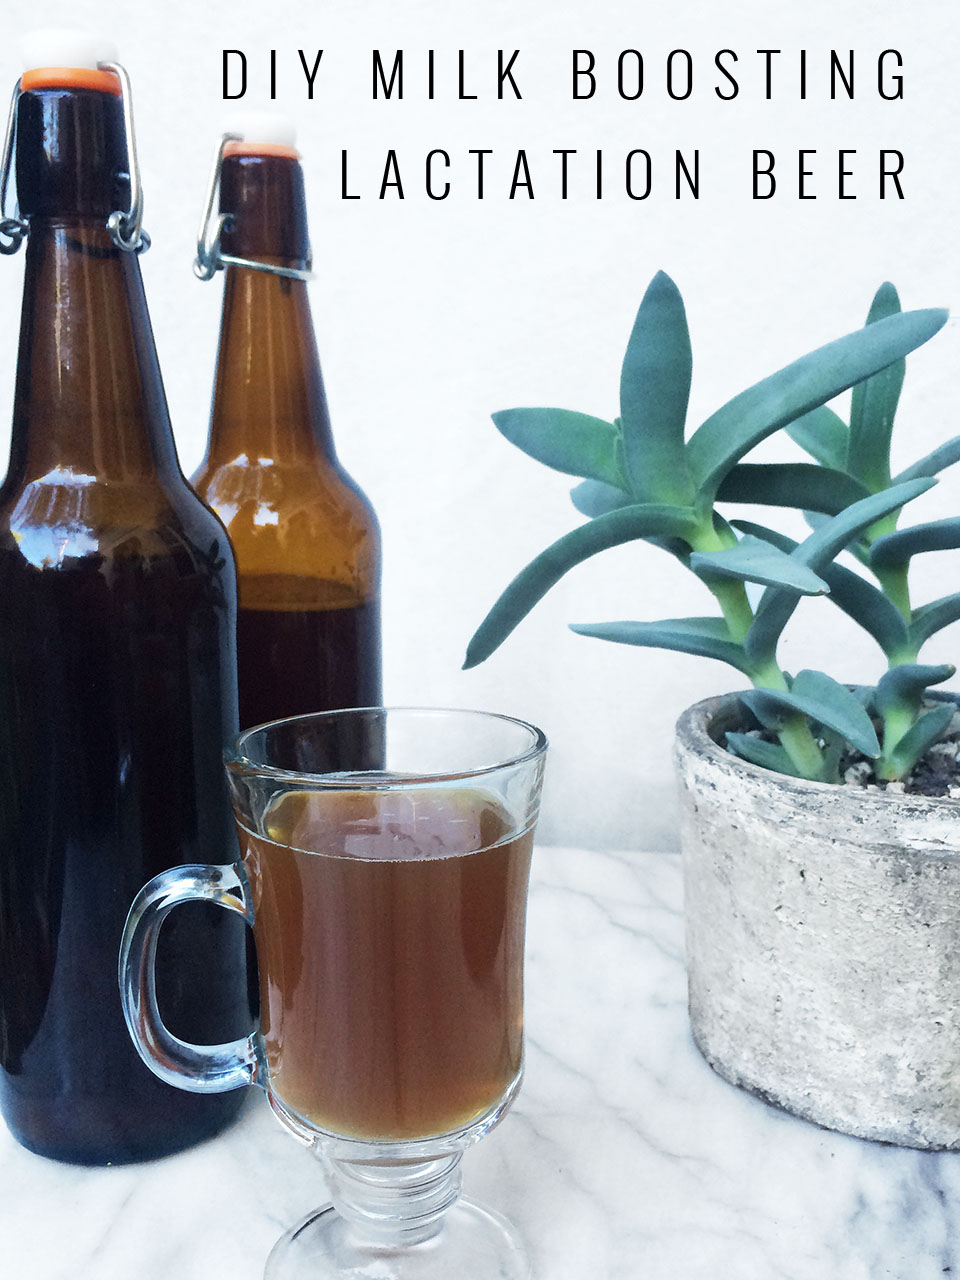 DIY Milk Boosting Lactation Beer for Breastfeeding Moms | Momma Society-The Community of Modern Moms | www.mommasociety.com | Join our party on Instagram @MommaSociety